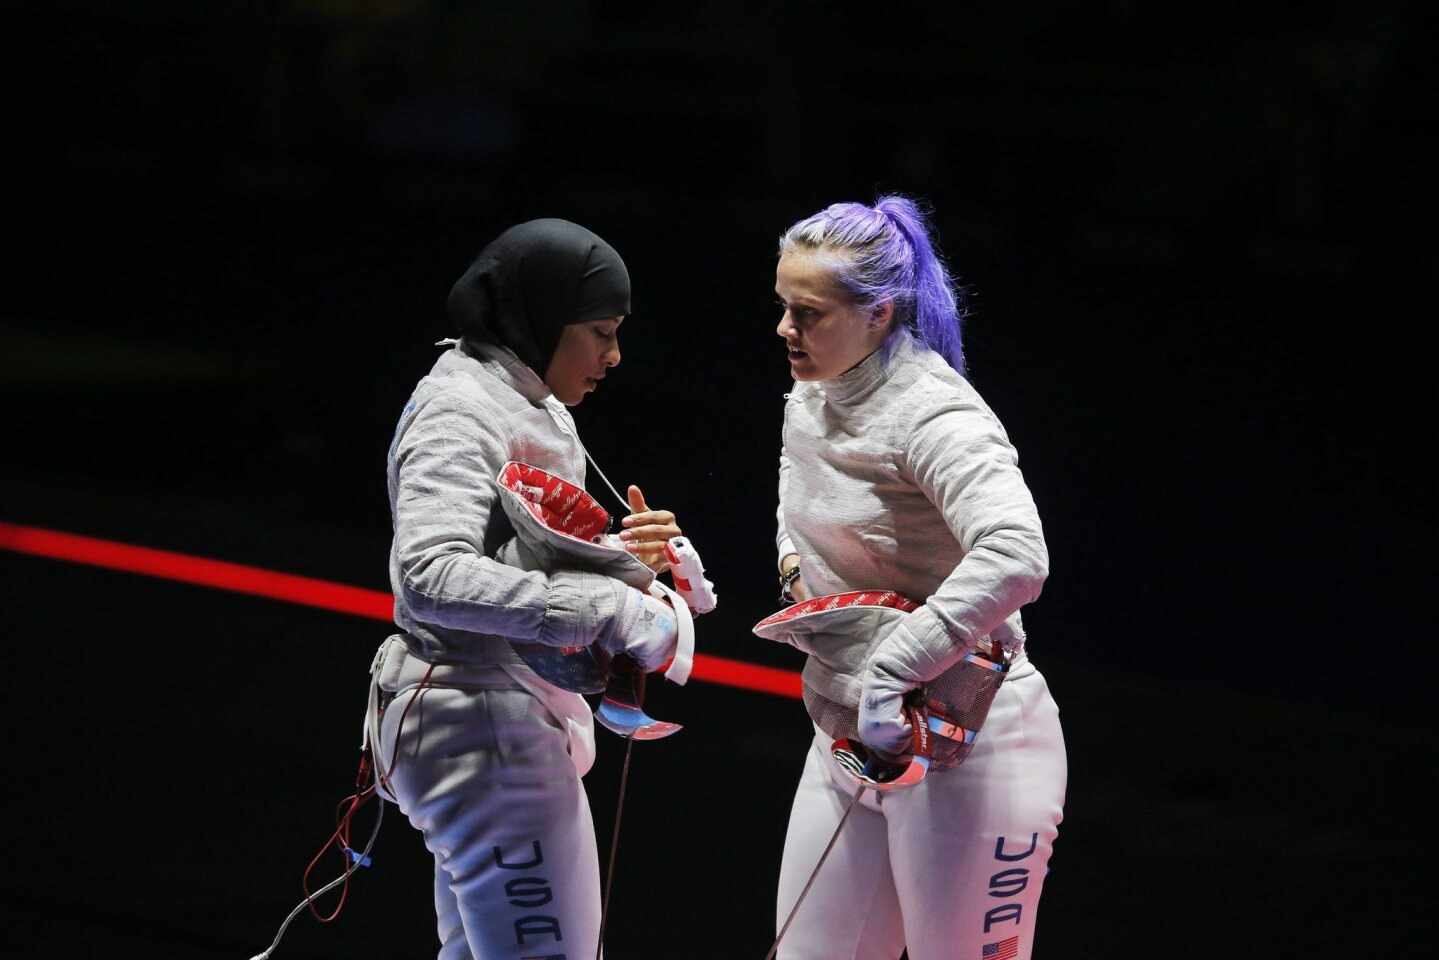 Dagmara Wozniak (R) and Ibtihaj Muhammad (L) of the USA react during the women's Sabre Team bronze medal match against Italy at the Rio 2016 Olympic Games Fencing events at the Carioca Arena 3 in the Olympic Park in Rio de Janeiro, Brazil.